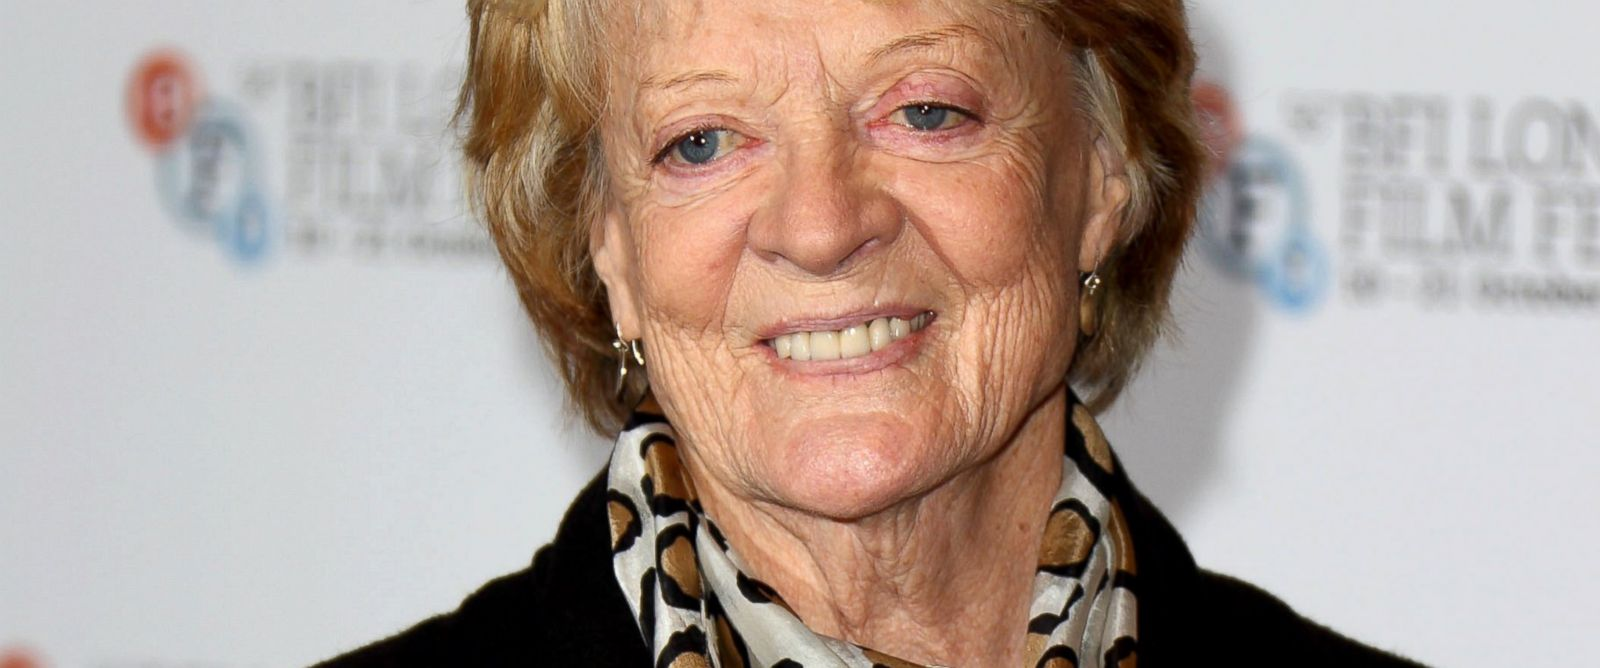 maggie smith moviesmaggie smith young, maggie smith cancer, maggie smith downton abbey, maggie smith 2016, maggie smith height, maggie smith gif, maggie smith interview, maggie smith son, maggie smith 2017, maggie smith 2015, maggie smith news, maggie smith kinopoisk, maggie smith кинопоиск, maggie smith filmography, maggie smith toby stephens, maggie smith movies, maggie smith downton, maggie smith actor, maggie smith wikifeet, maggie smith emmy